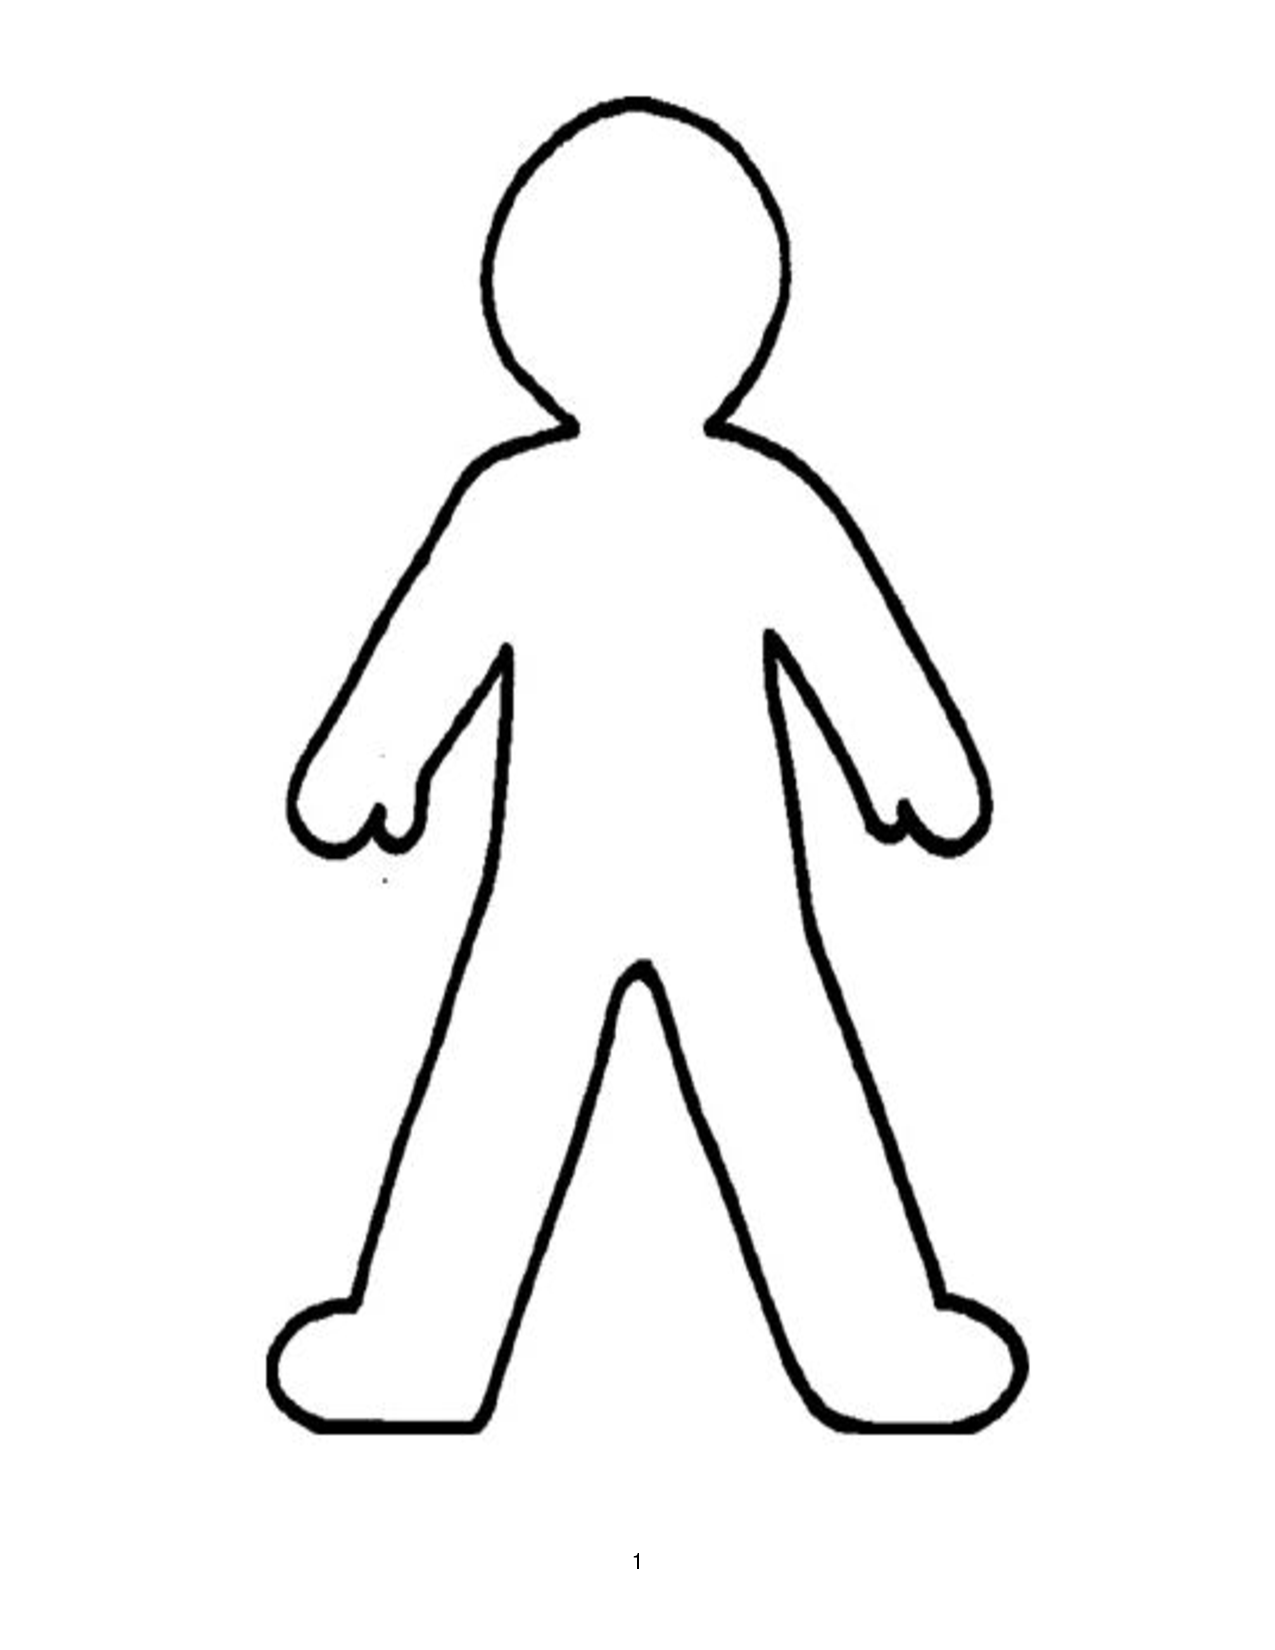 Doll Outline Template - ClipArt Best - PNG Human Body Outline